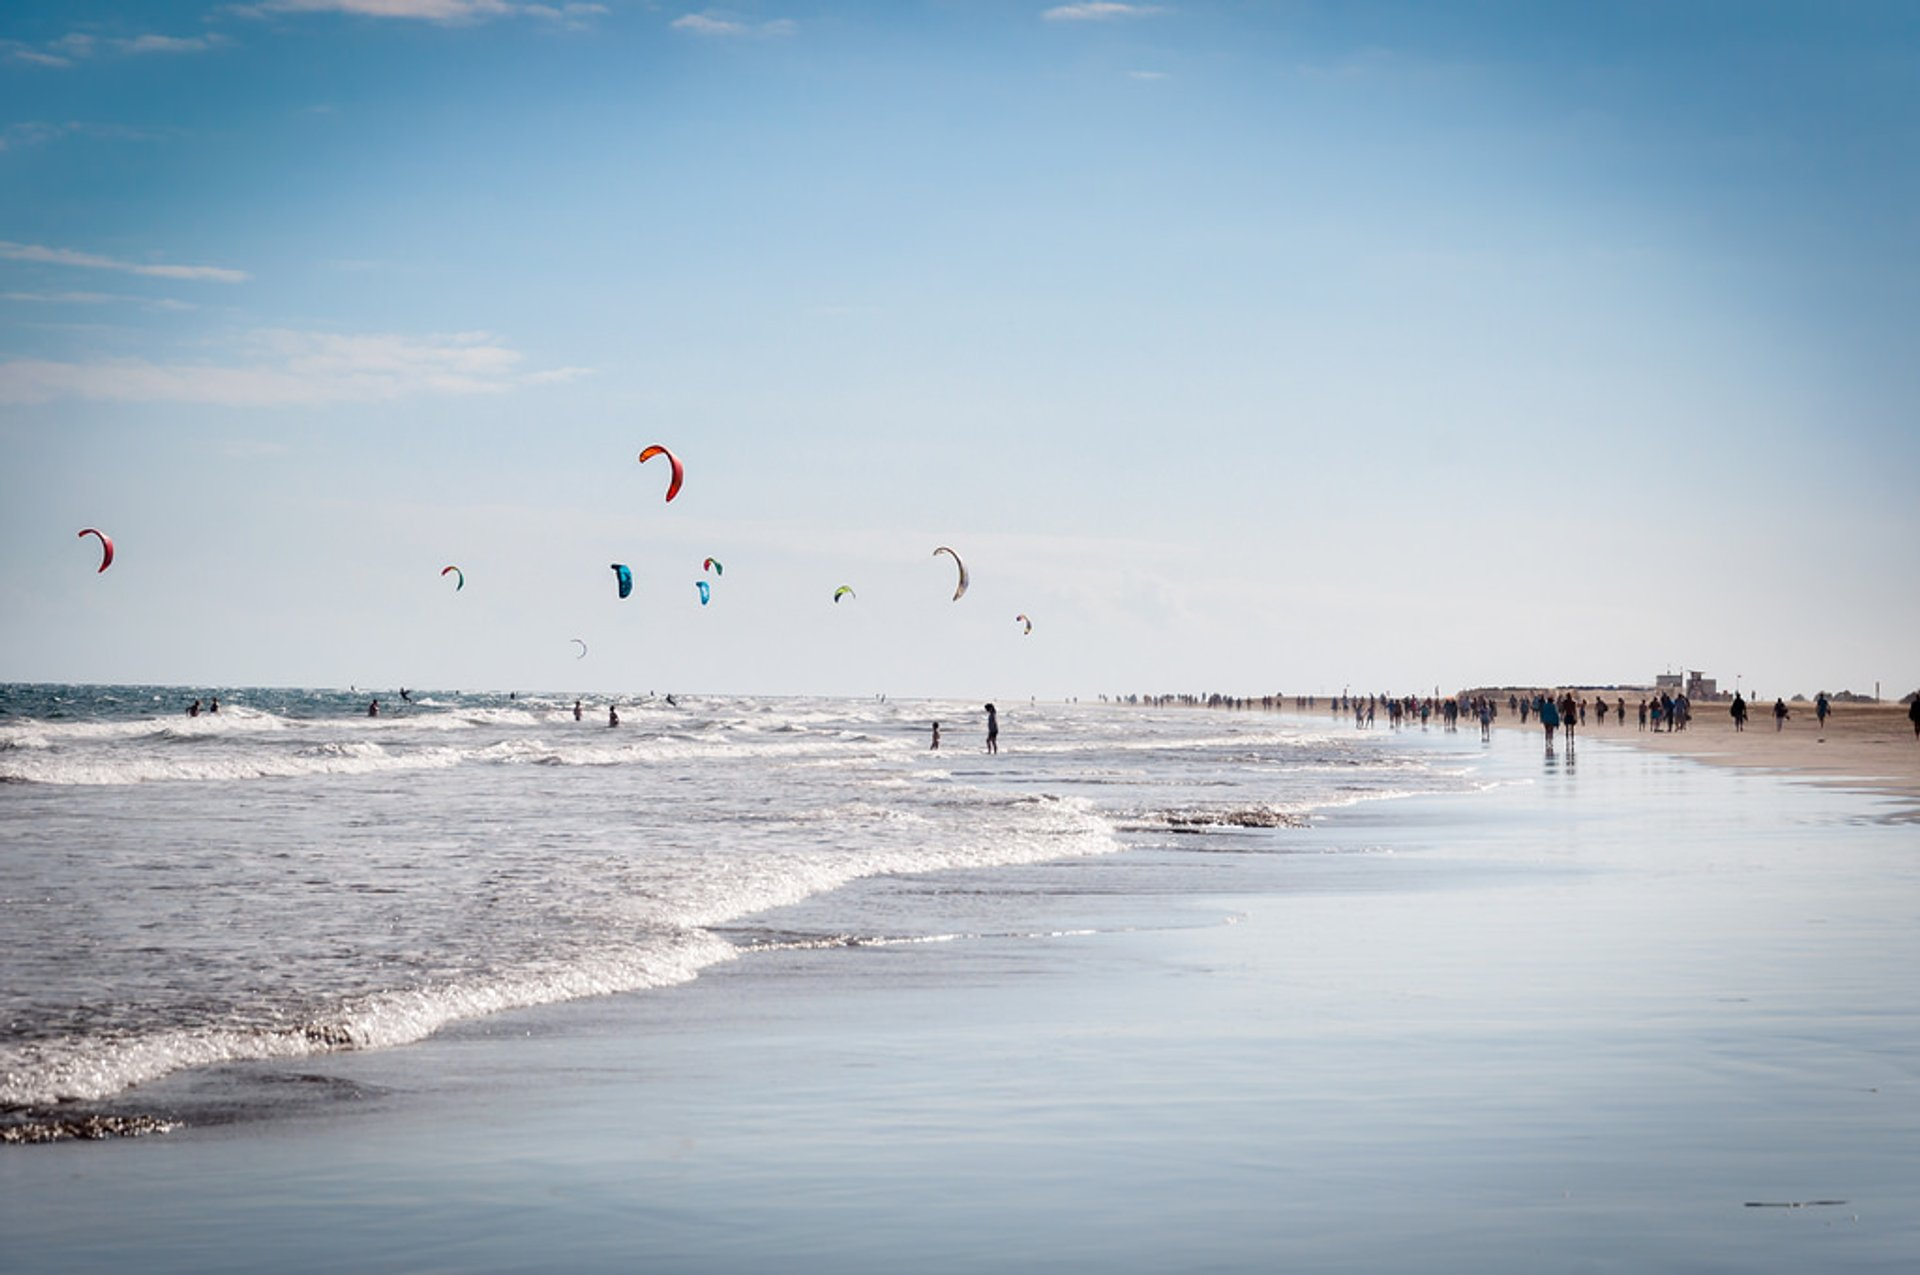 Kitesurfing at Playa del Ingles in Gran Canaria